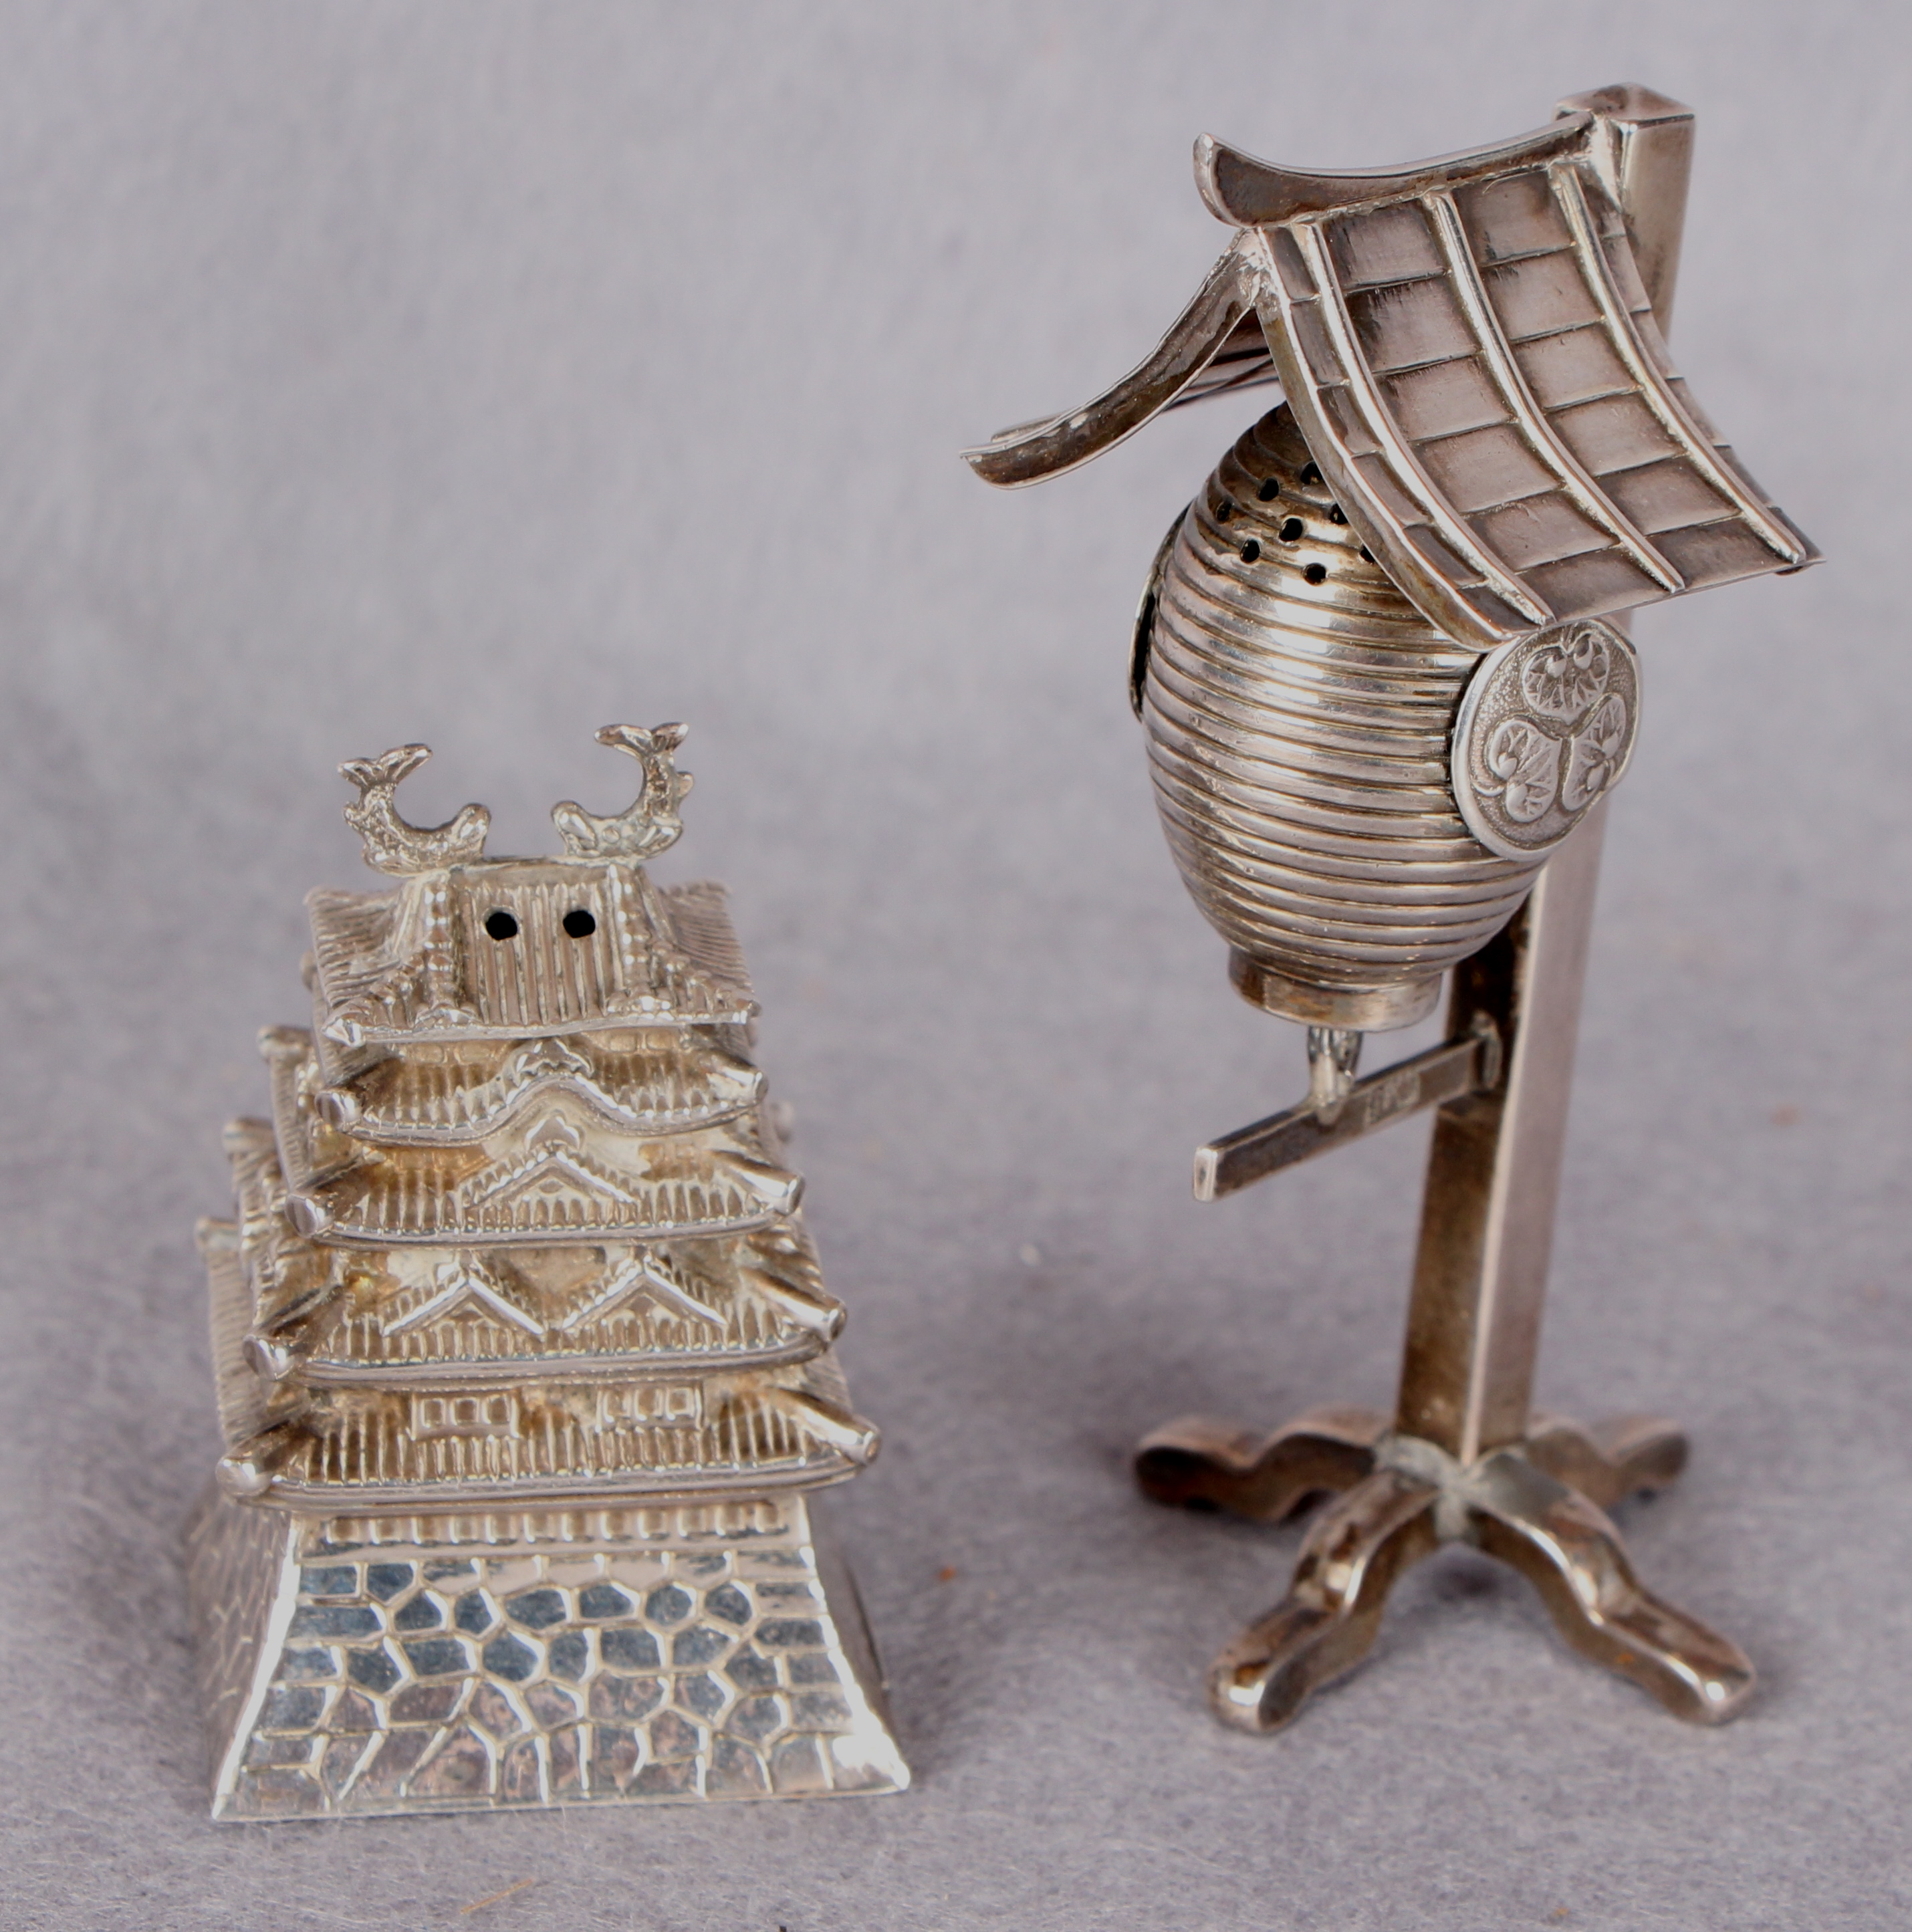 Lot 44 - Two Chinese silver table condiments, one formed as a lantern,